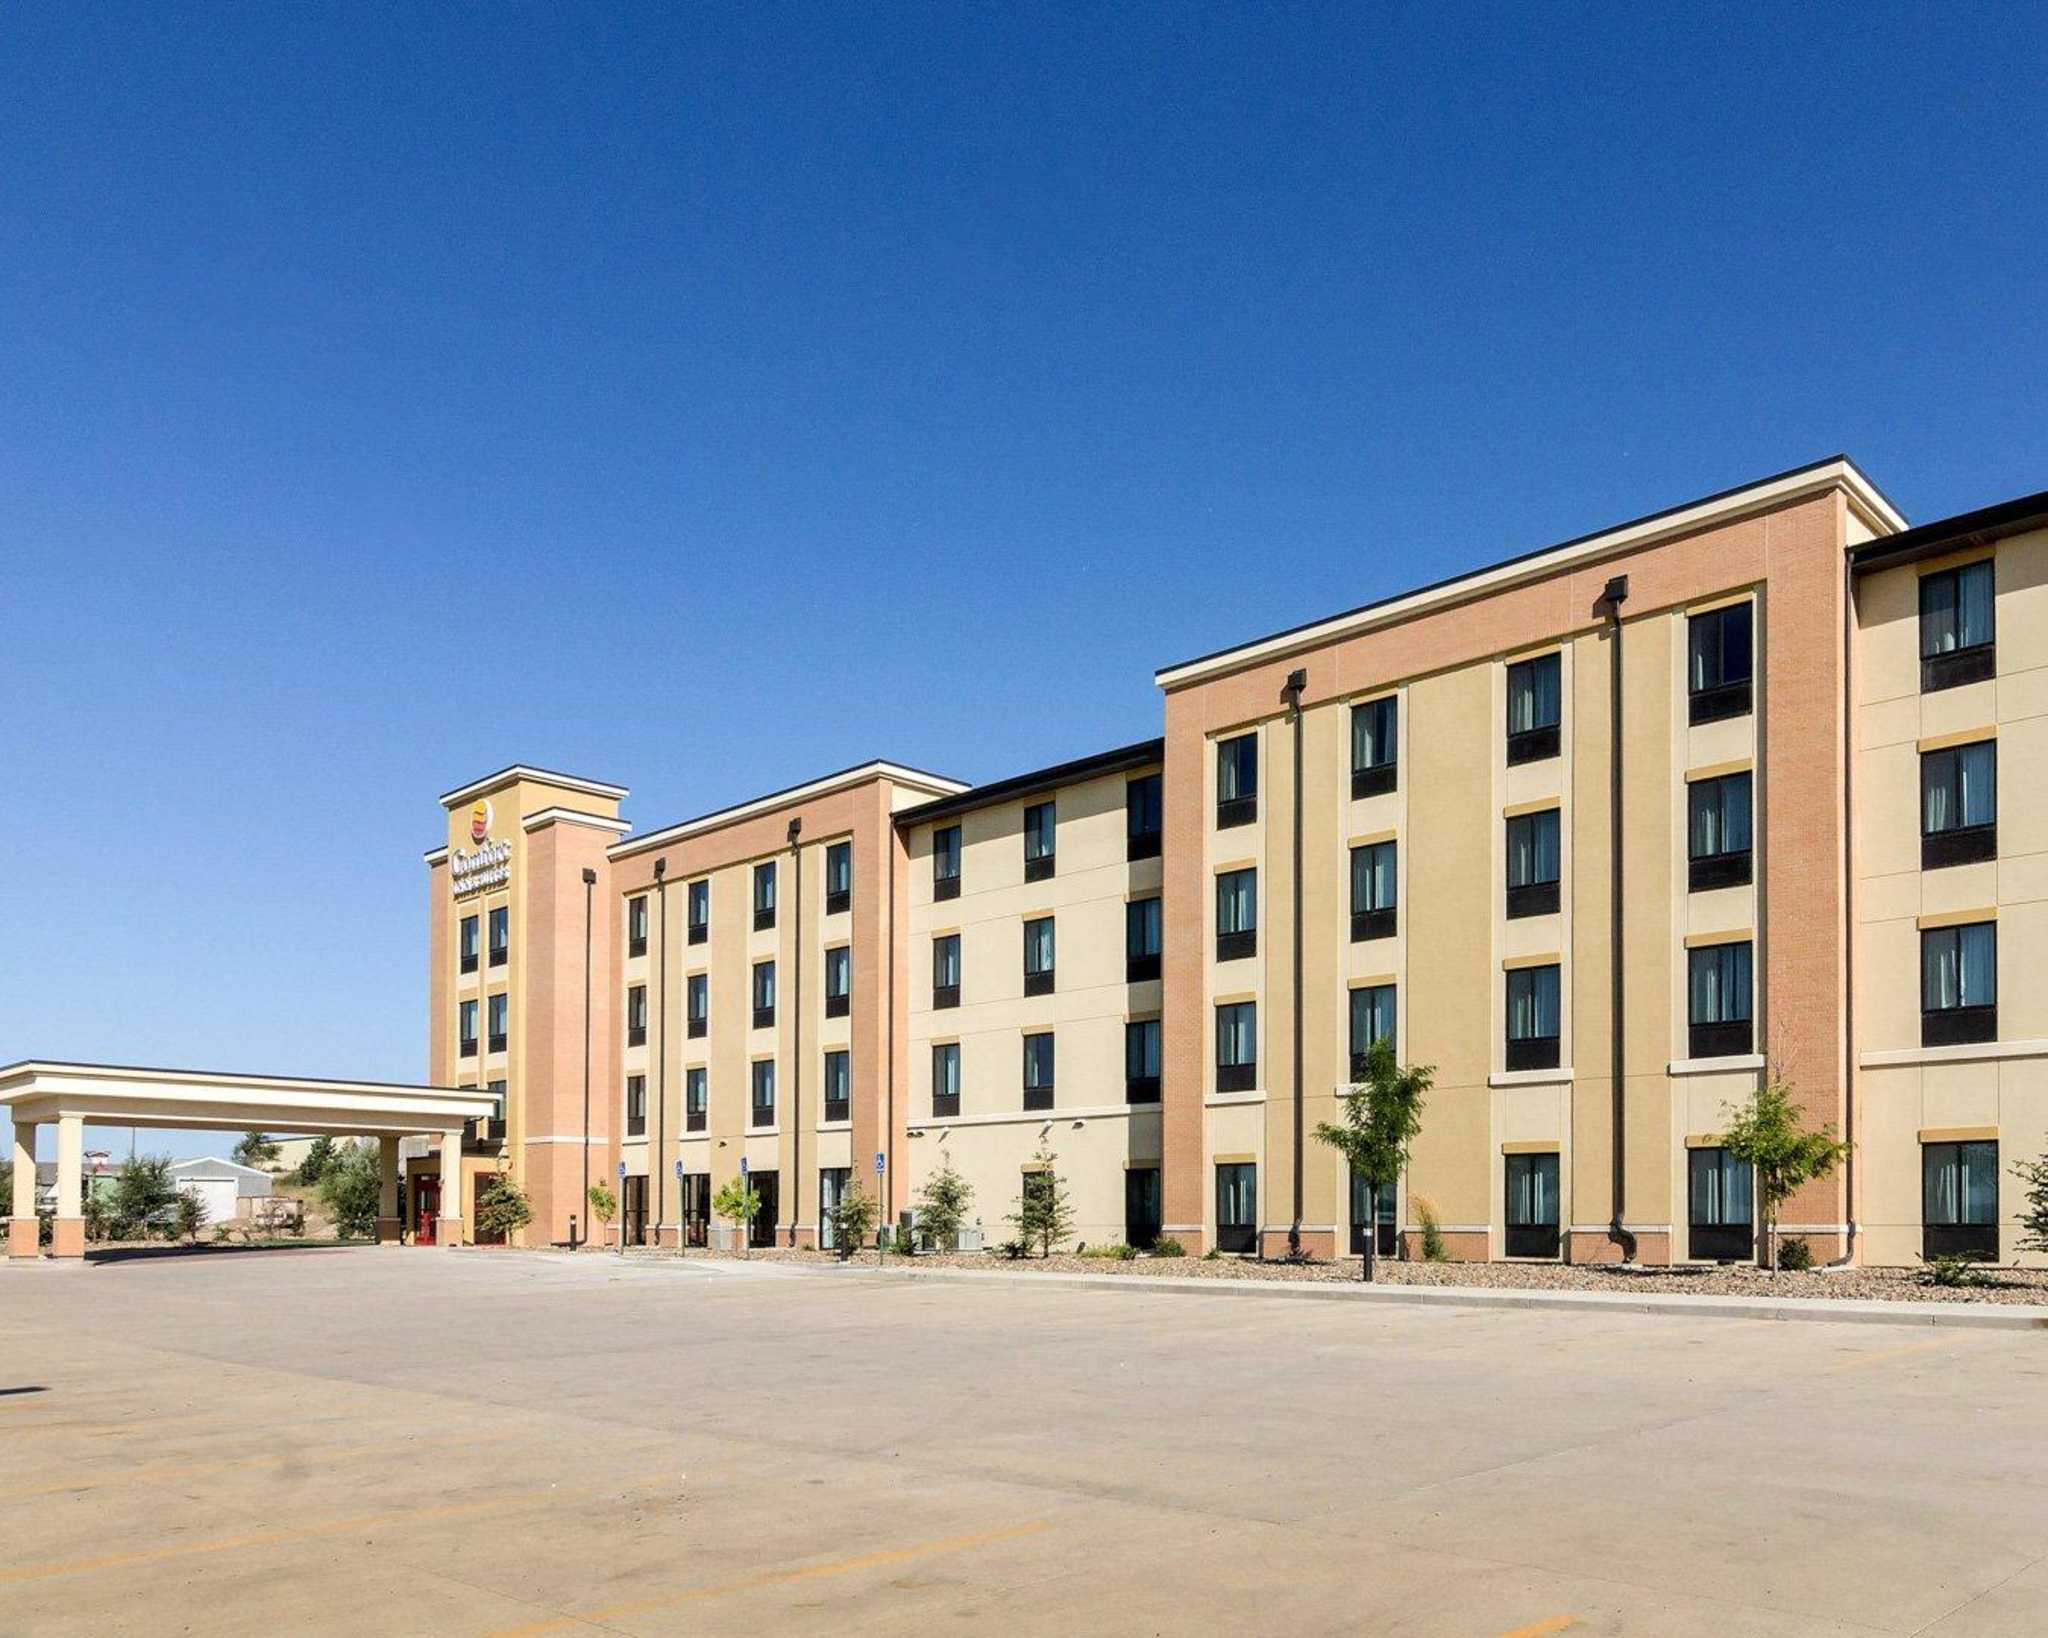 Comfort Inn amp Suites Coupons Watford City ND near me  : 2048x1638 from www.8coupons.com size 2048 x 1638 jpeg 204kB